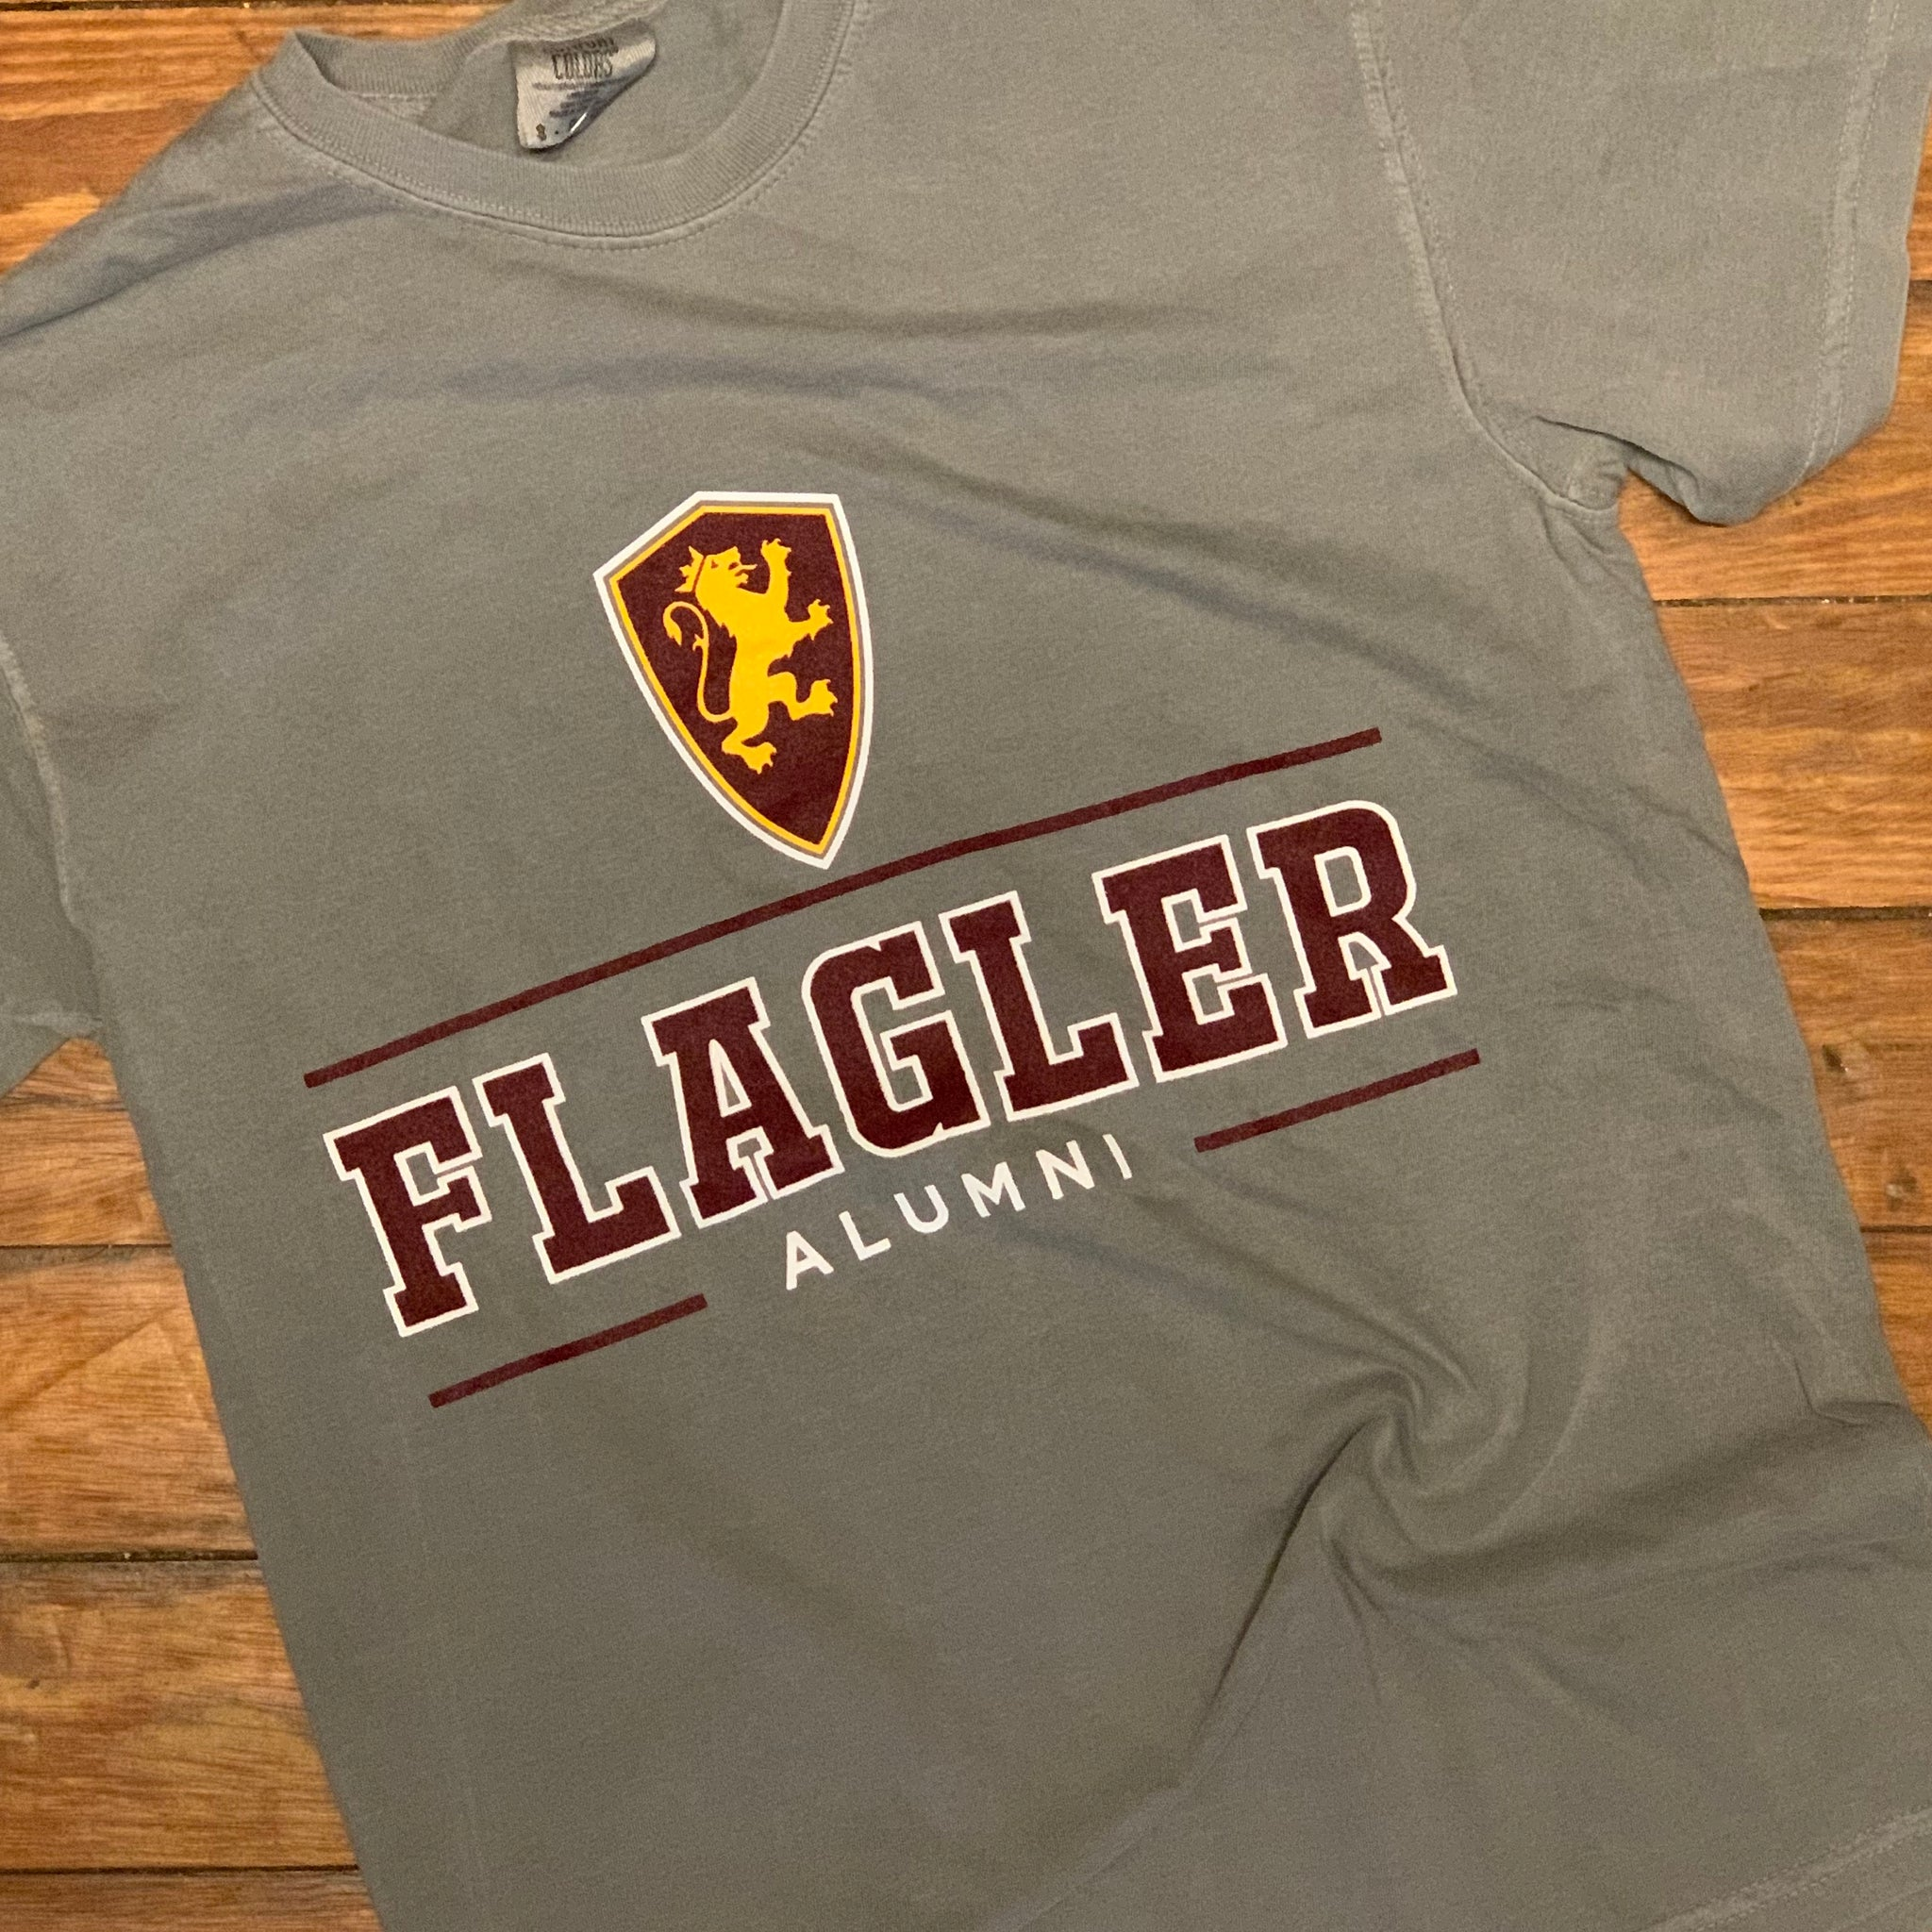 Grey short sleeve shirt with shield printed in yellow and red with white outline. red line underneath with Flagler printed in red with white outline. Alumni printed under in white. All on front of shirt